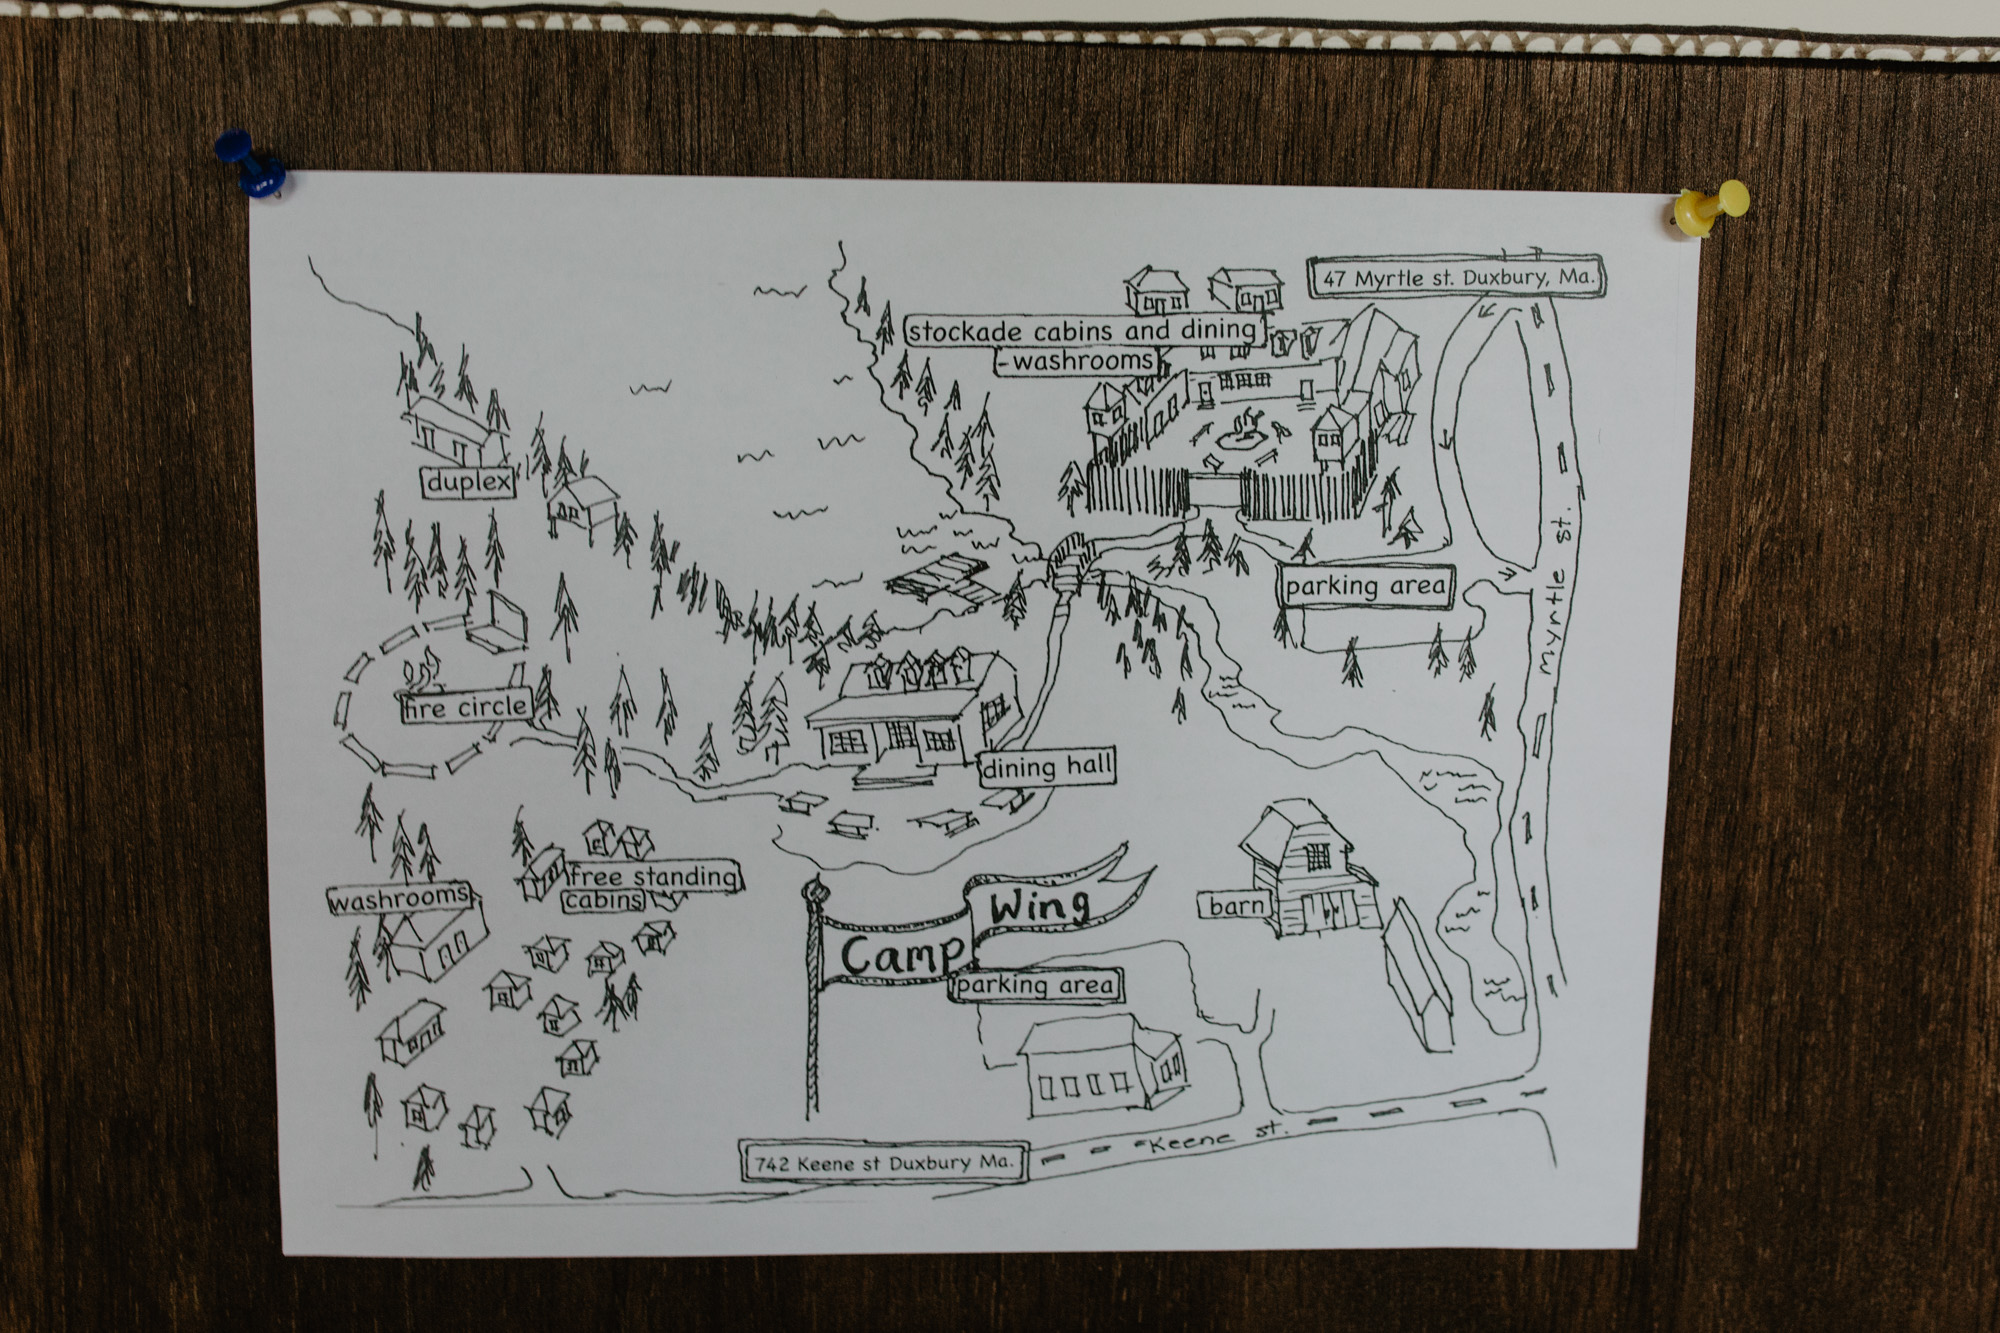 A map of Camp Wing in Duxbury MA